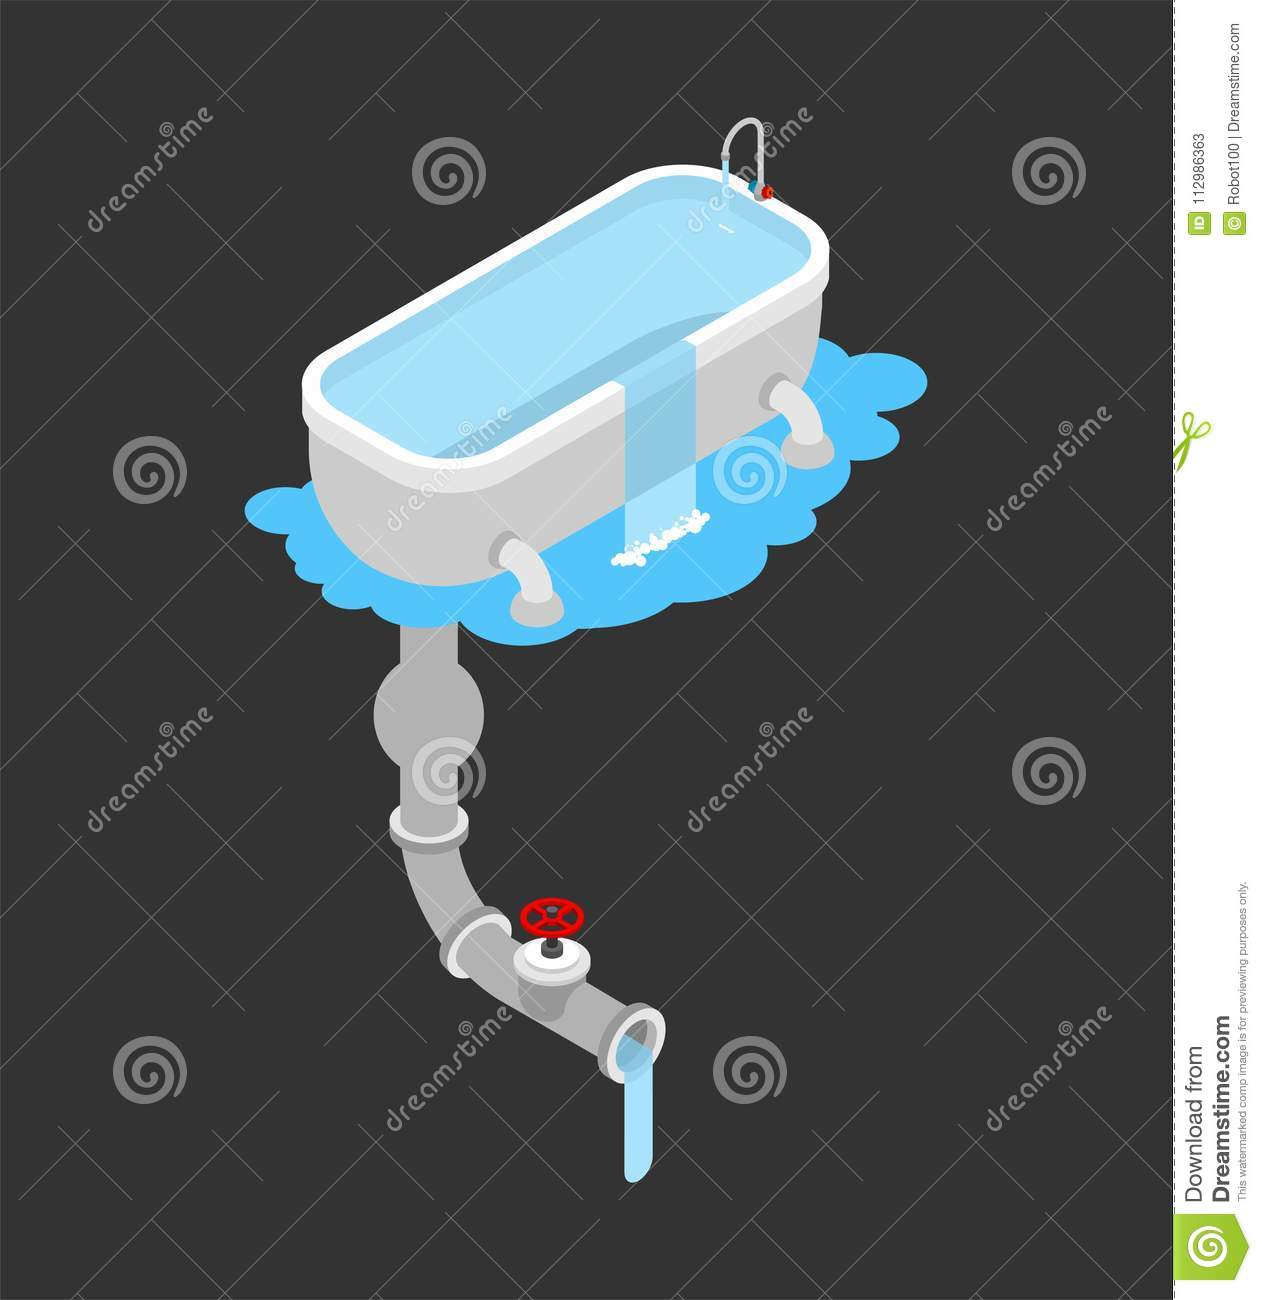 Bath was clogged. Leakage canalization. Clogged in bathroom. Iso